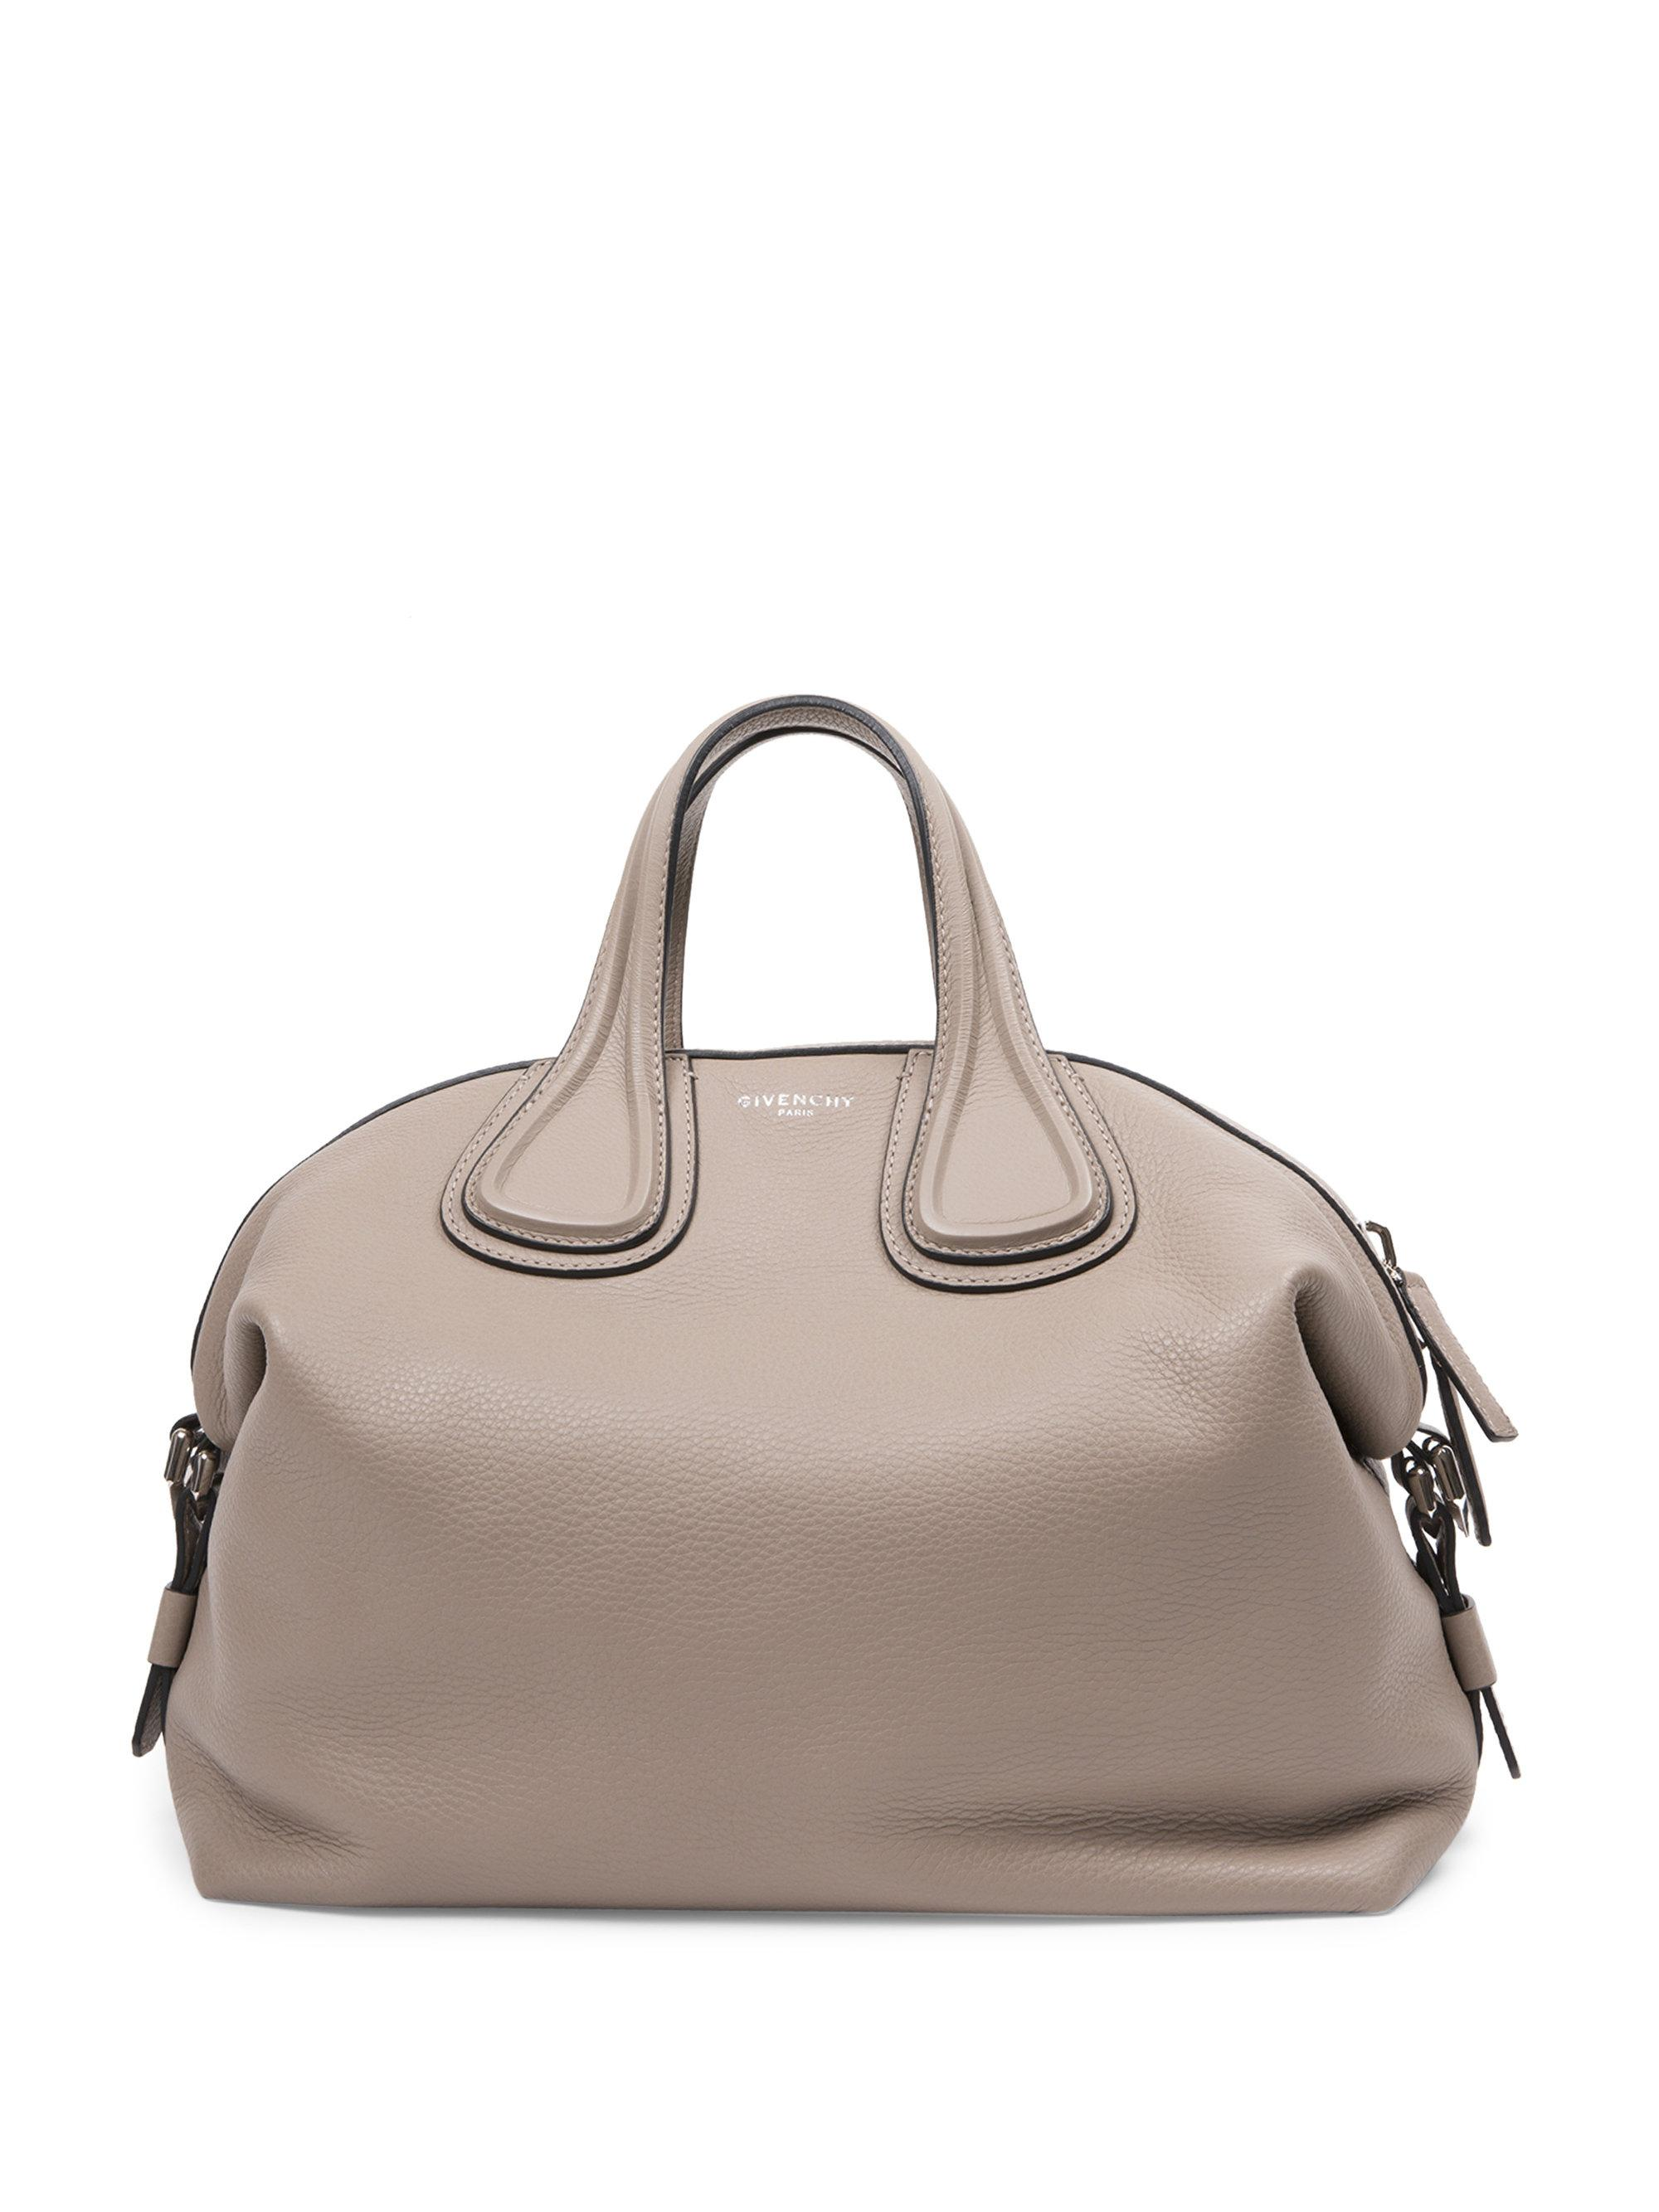 c8e550e736 Lyst - Givenchy Nightingale Small Satchel in Gray